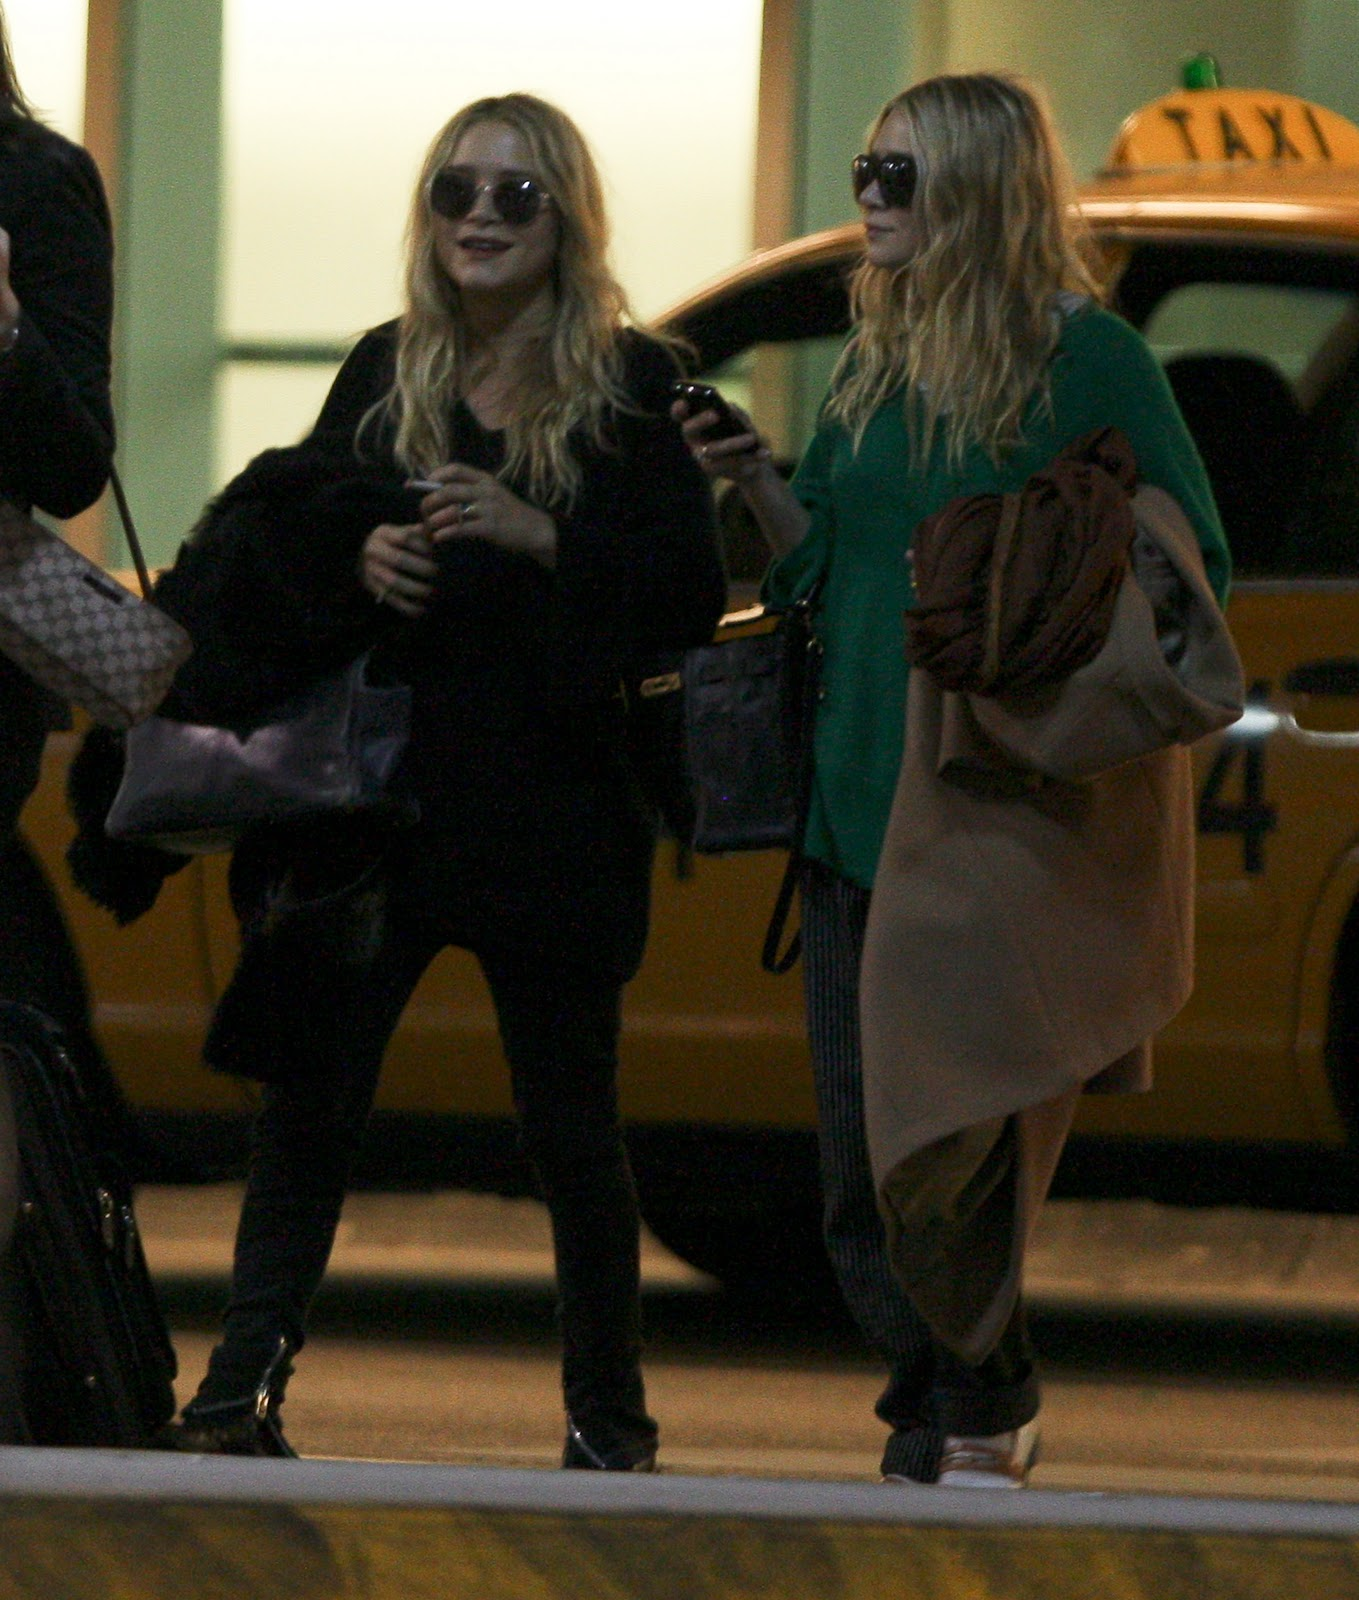 http://4.bp.blogspot.com/_GnEnUg2m1AI/TTy5eq7wvZI/AAAAAAAACiM/l2-SjZps0fw/s1600/32860_Preppie_Mary_Kate_and_Ashley_Olsen_arriving_at_Miami_International_Airport_3_122_438lo.jpg